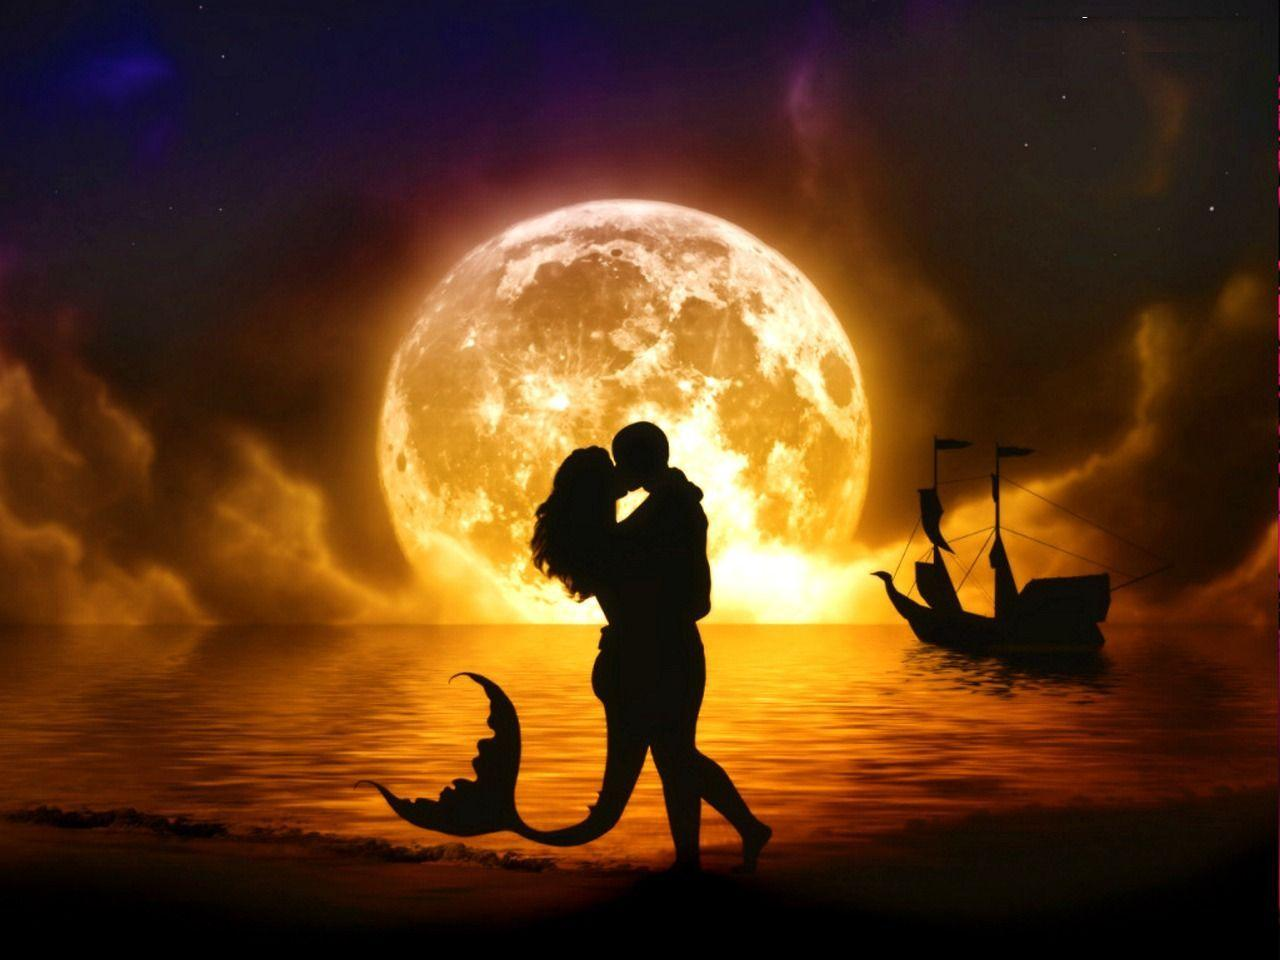 Love Kiss Wallpaper For Mobile : Love Kiss Pictures Wallpapers - Wallpaper cave